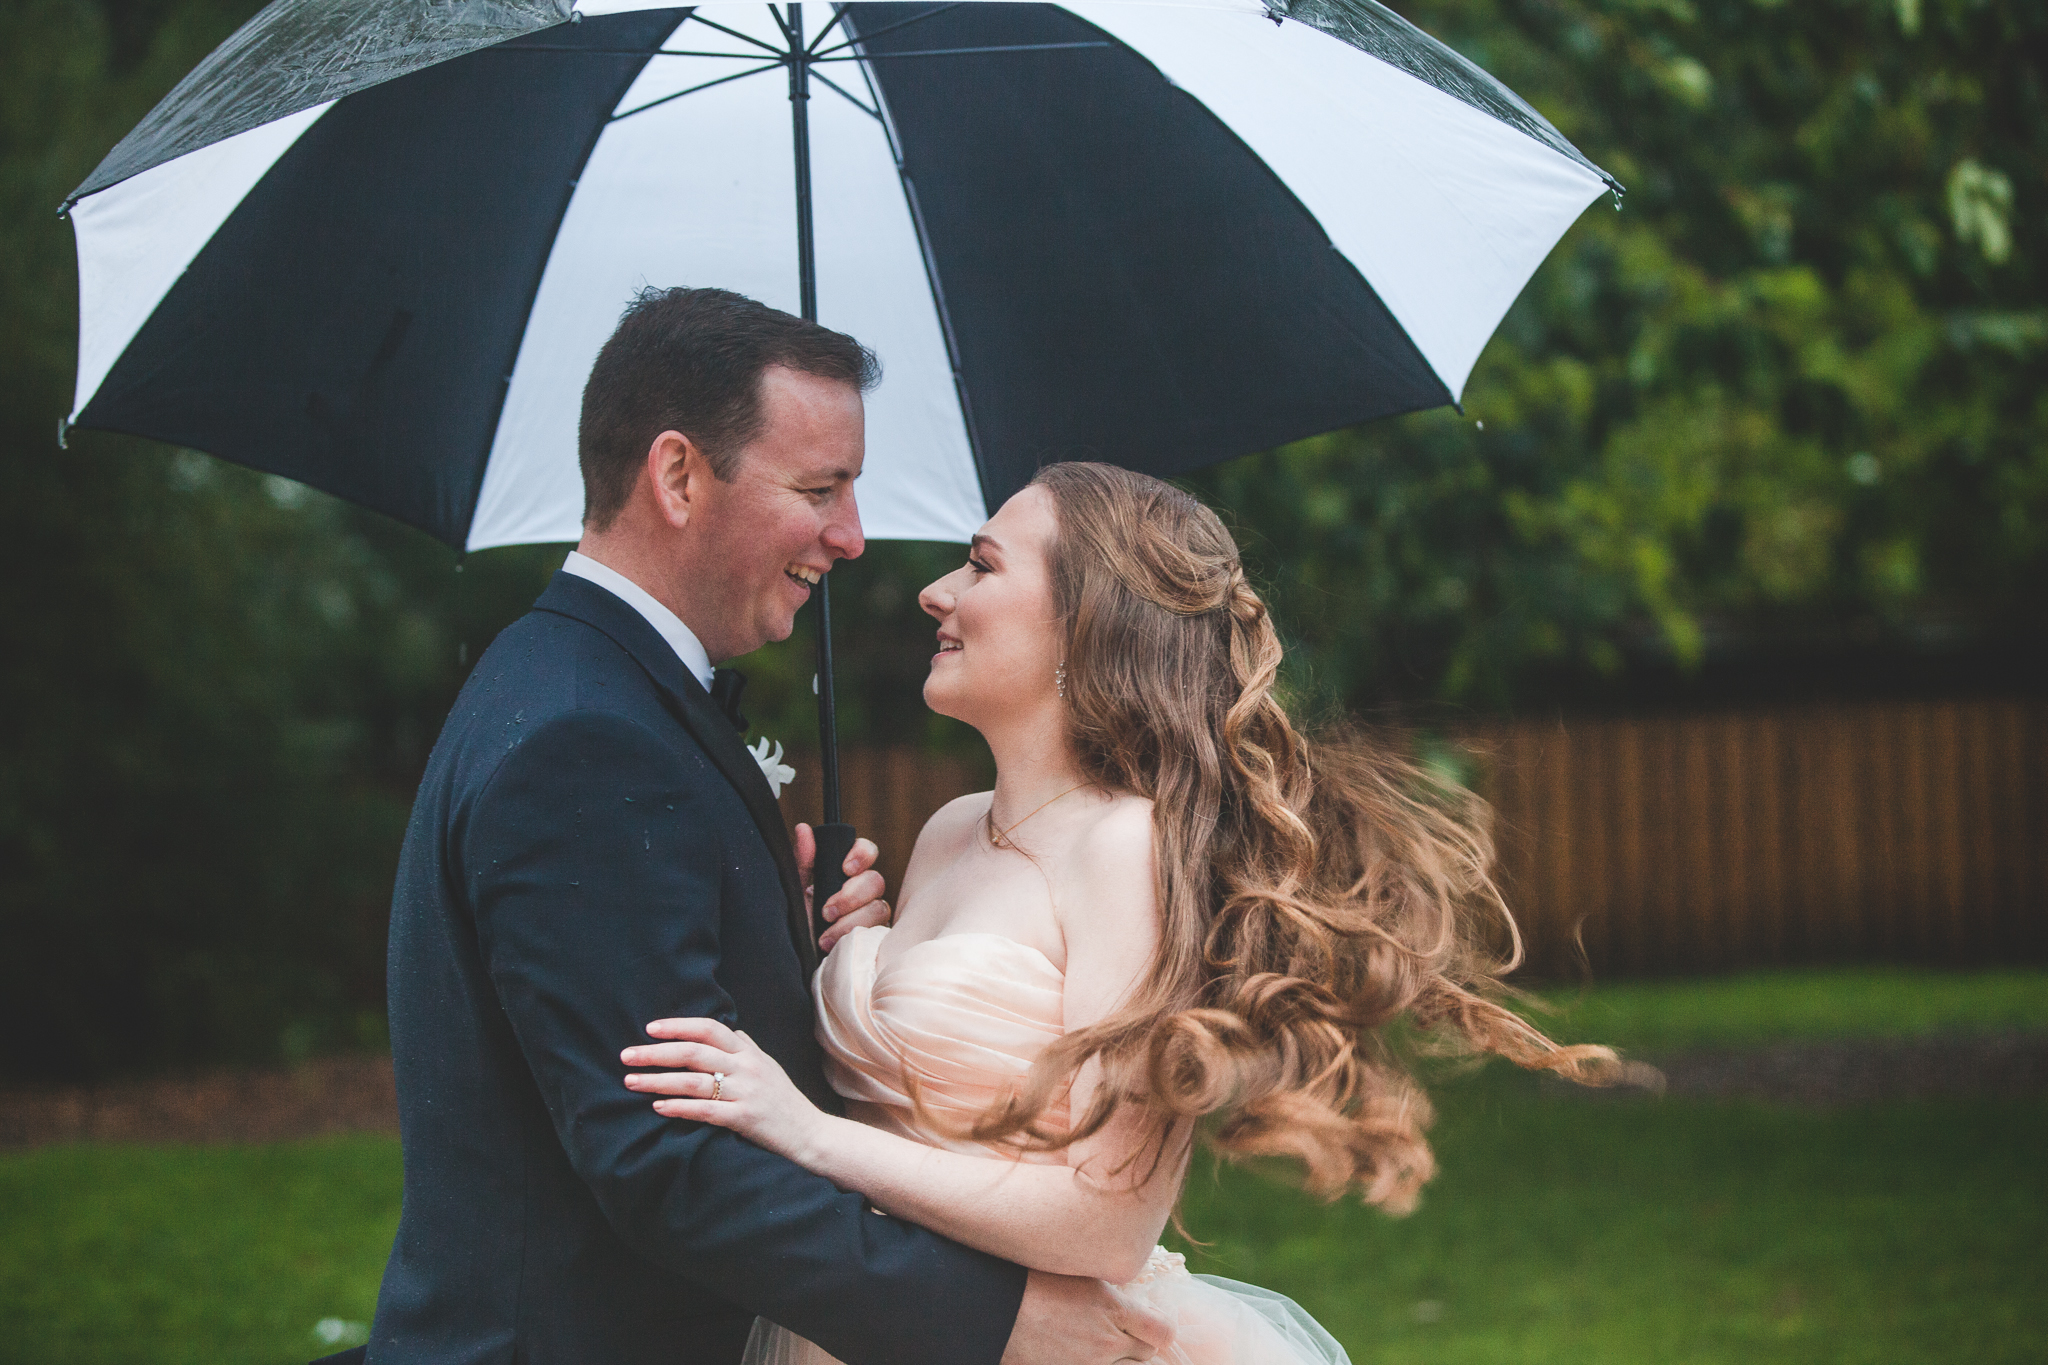 Sarah and Mark - She captured the most breathtaking pictures on our rainy wedding day that we will cherish forever. Every single step of the process from booking her to getting our pictures back has been so personalized.